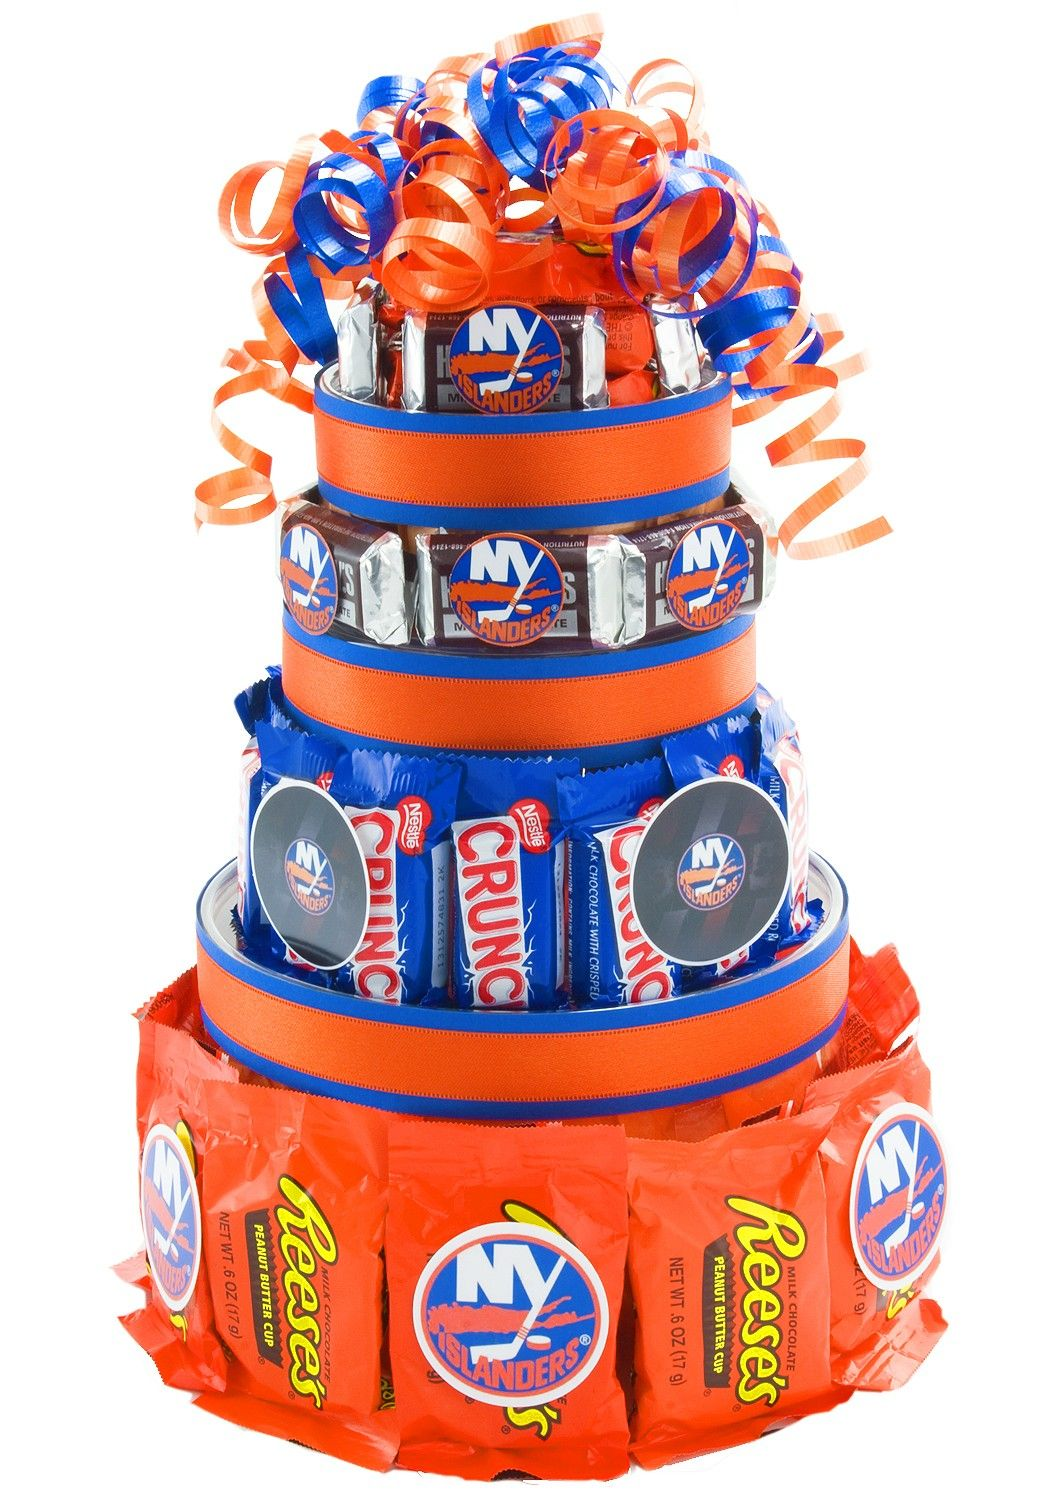 NY Islander Candy Cake! You could do this with any team if